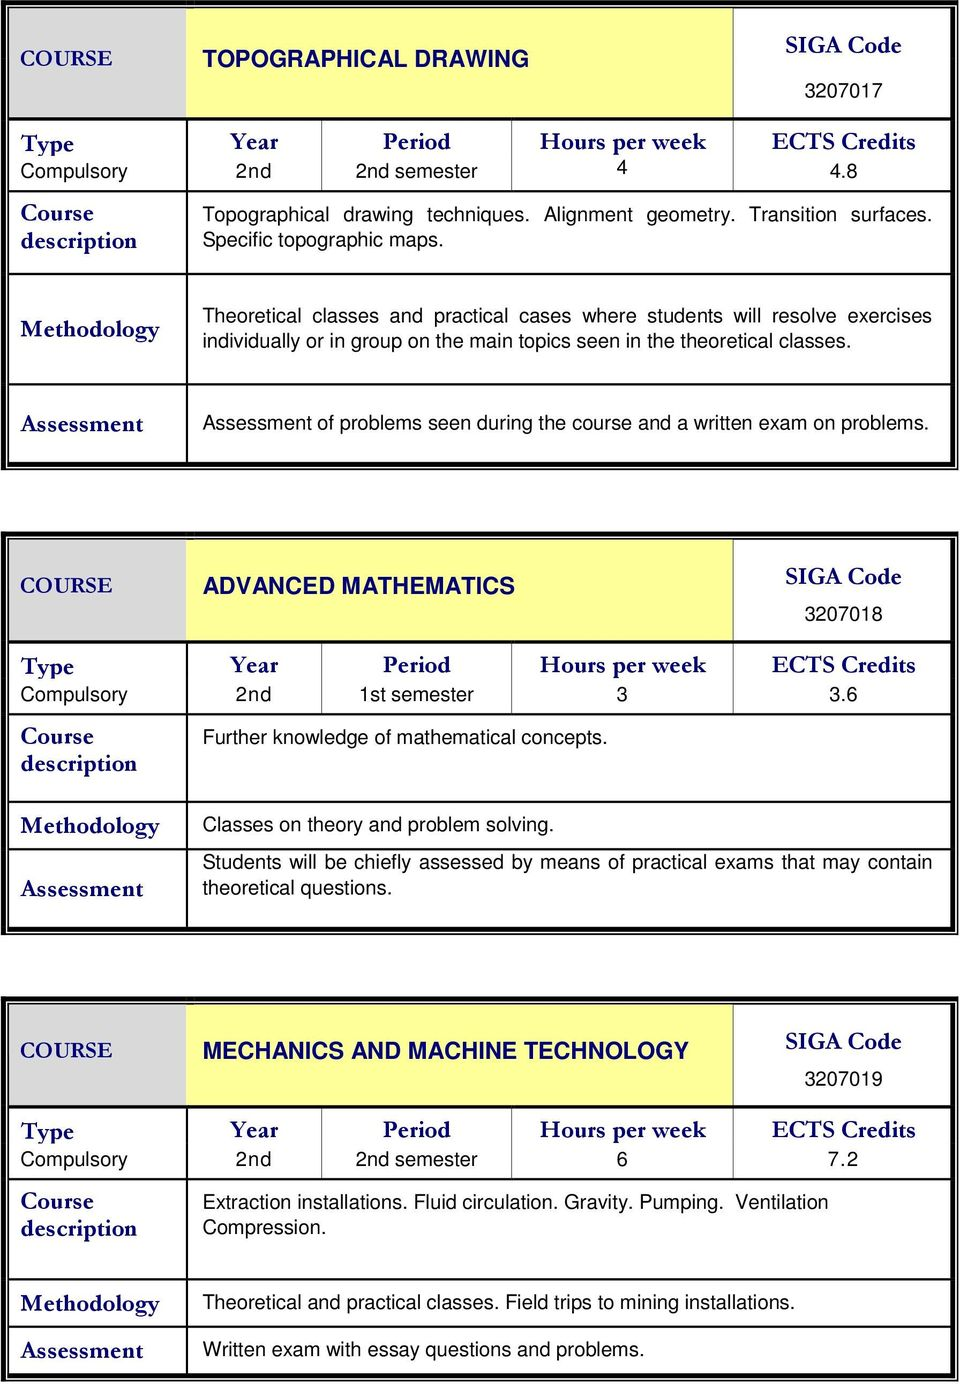 of problems seen during the course and a written exam on problems. ADVANCED MATHEMATICS 3207018 Compulsory 2nd 1st semester 3 3.6 Further knowledge of mathematical concepts.